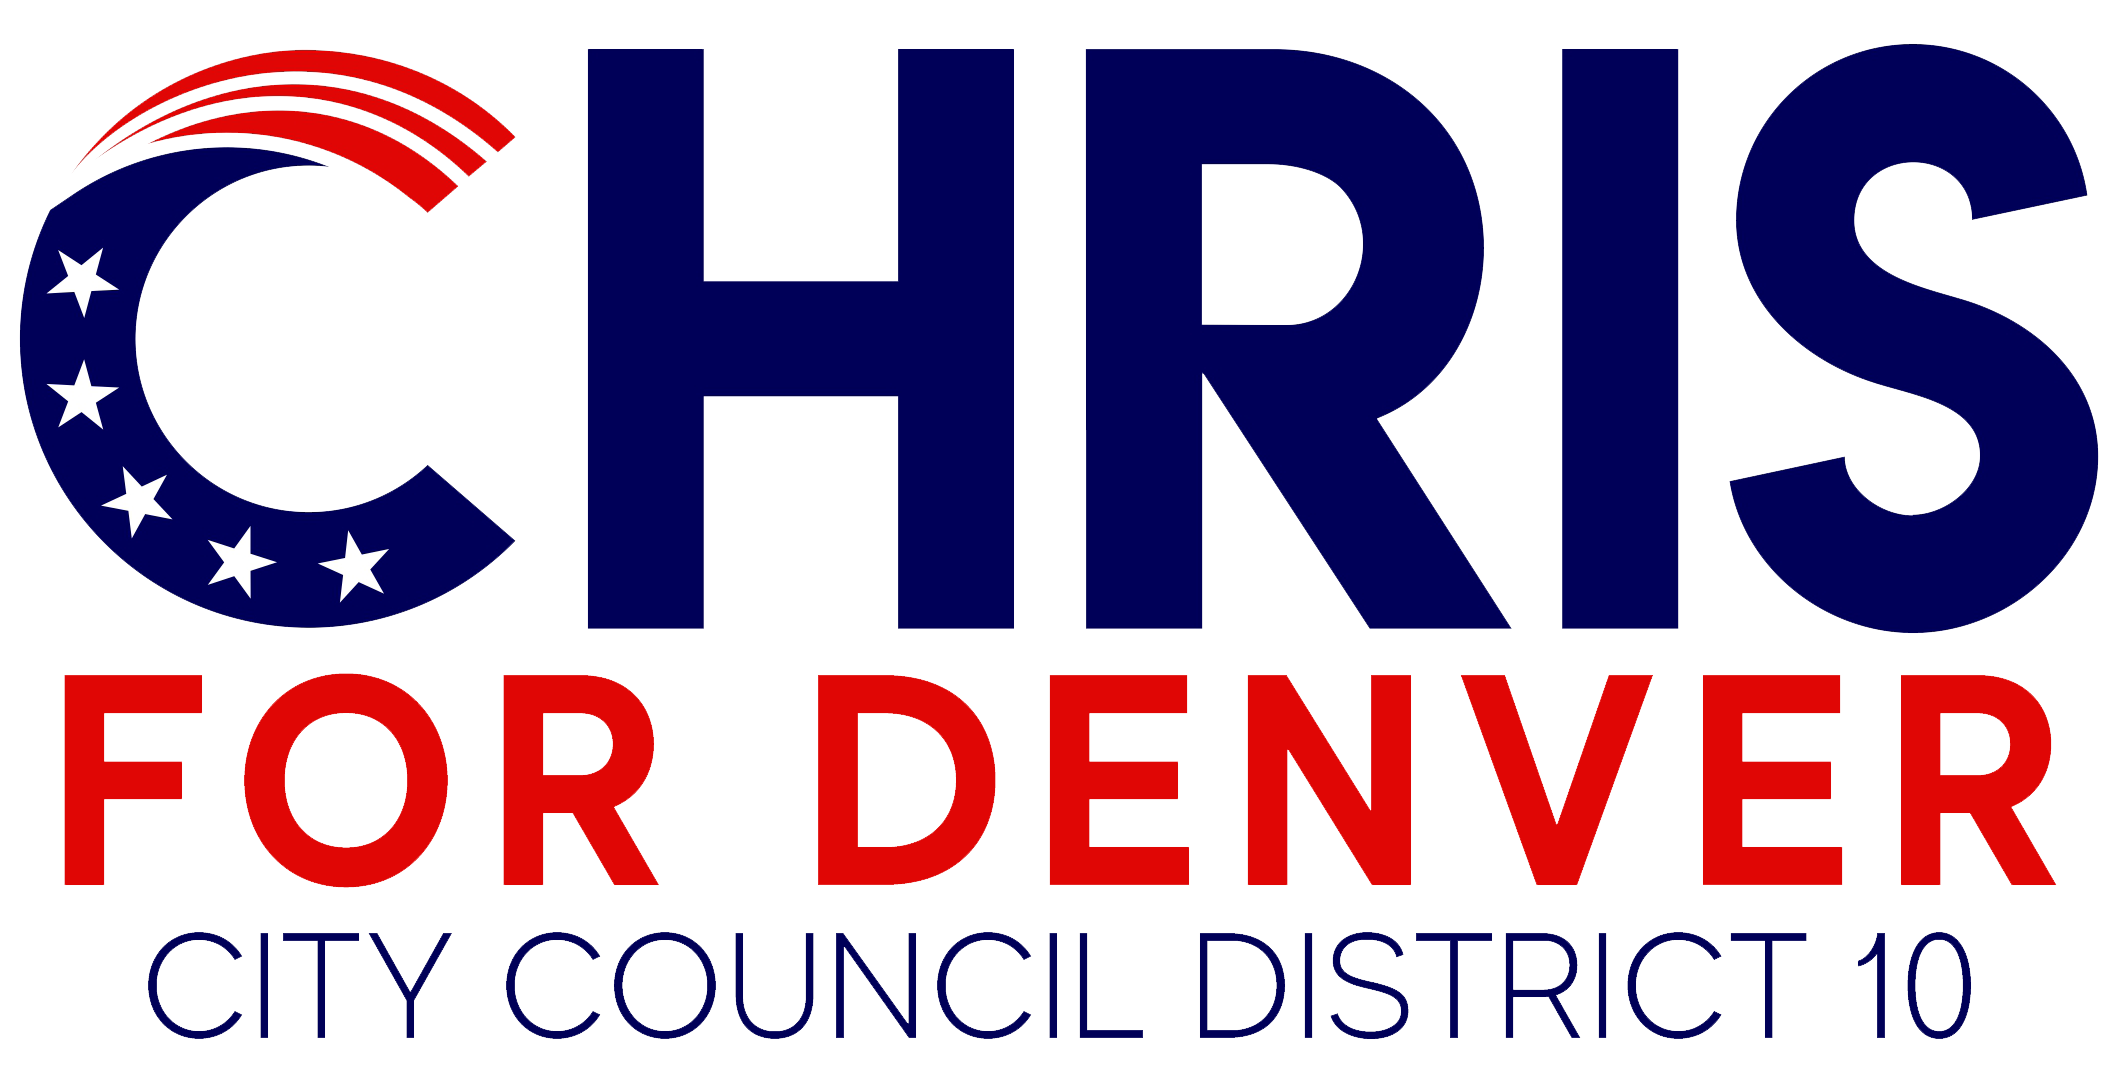 Chris for Denver logo